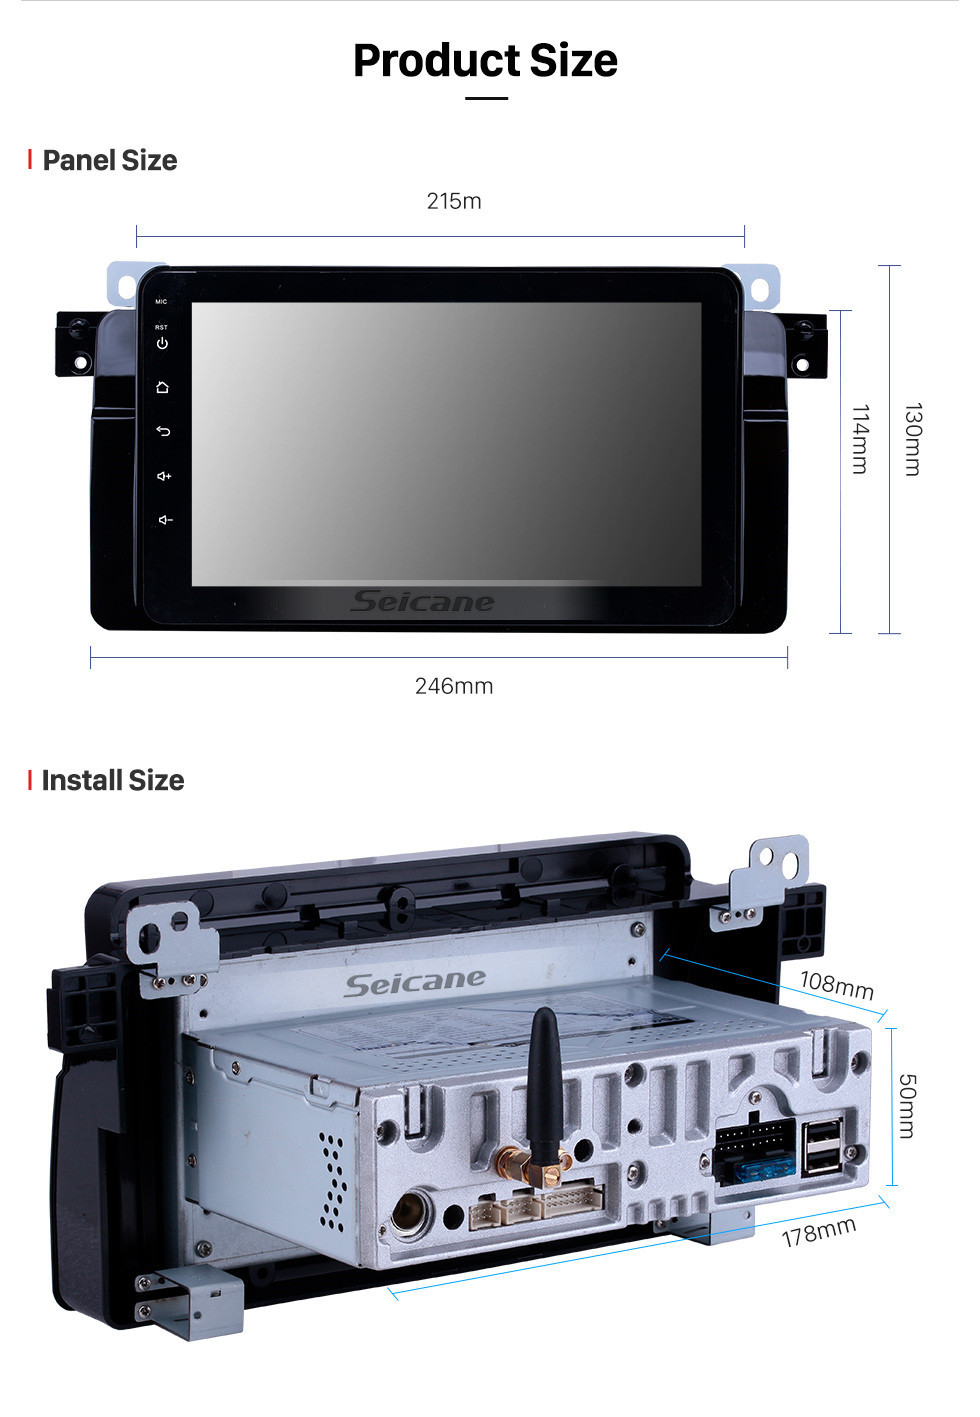 Seicane 8 inch 1998-2006 BMW 3 Series E46 M3/2001-2004 MG ZT/1999-2004 Rover 75 Android 10.0 GPS Navigation Radio Bluetooth HD Touchscreen Carplay support Mirror Link